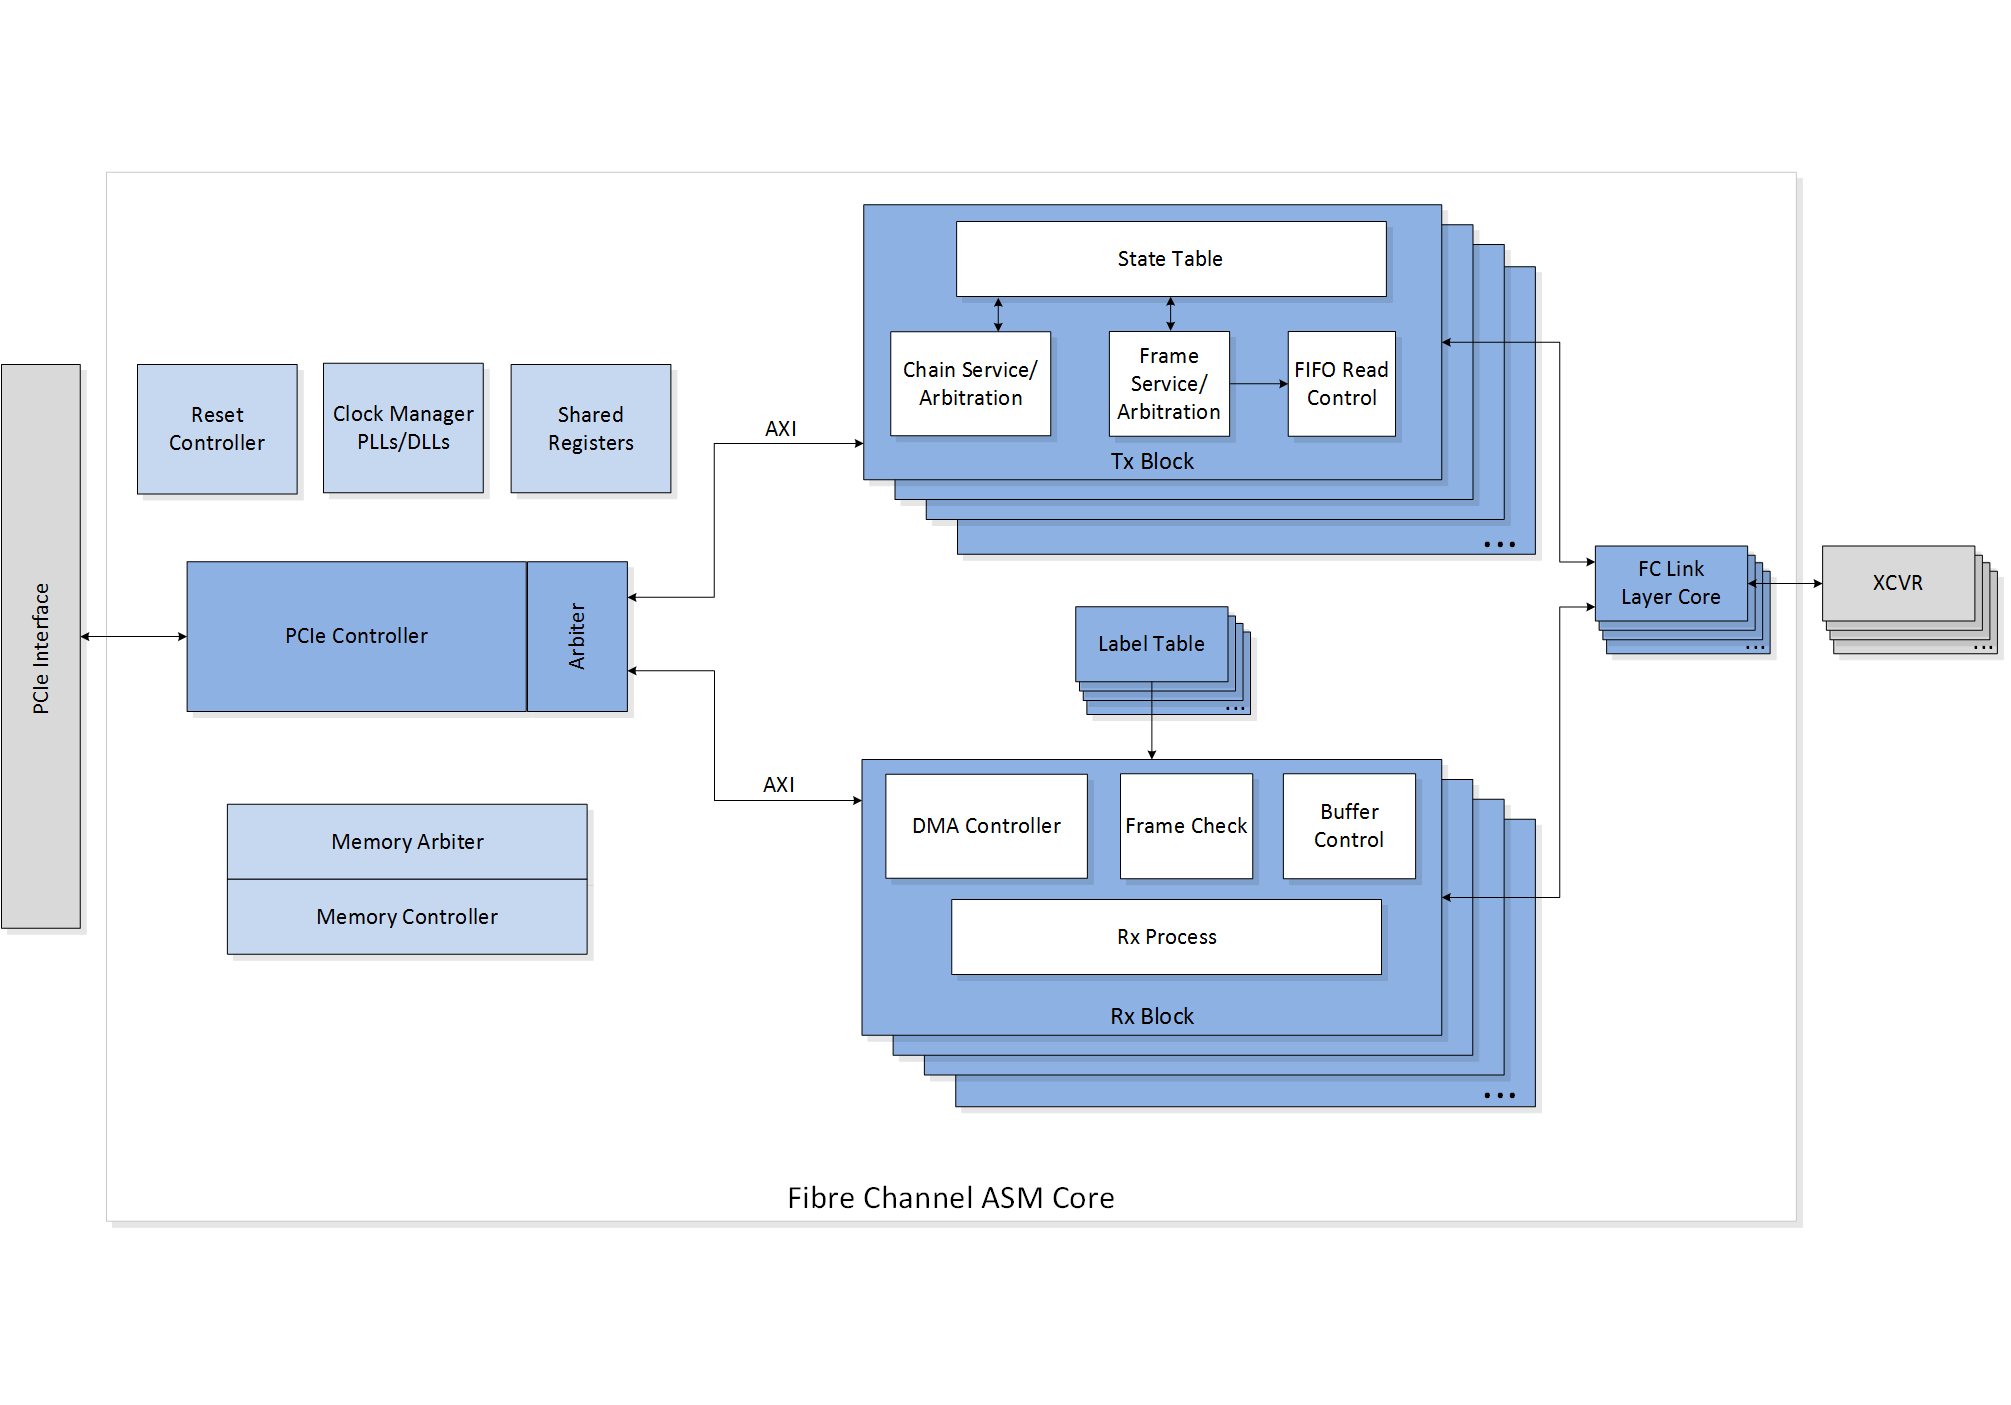 Featured-Fibre-Channel-ASM-Core-Block-Diagram